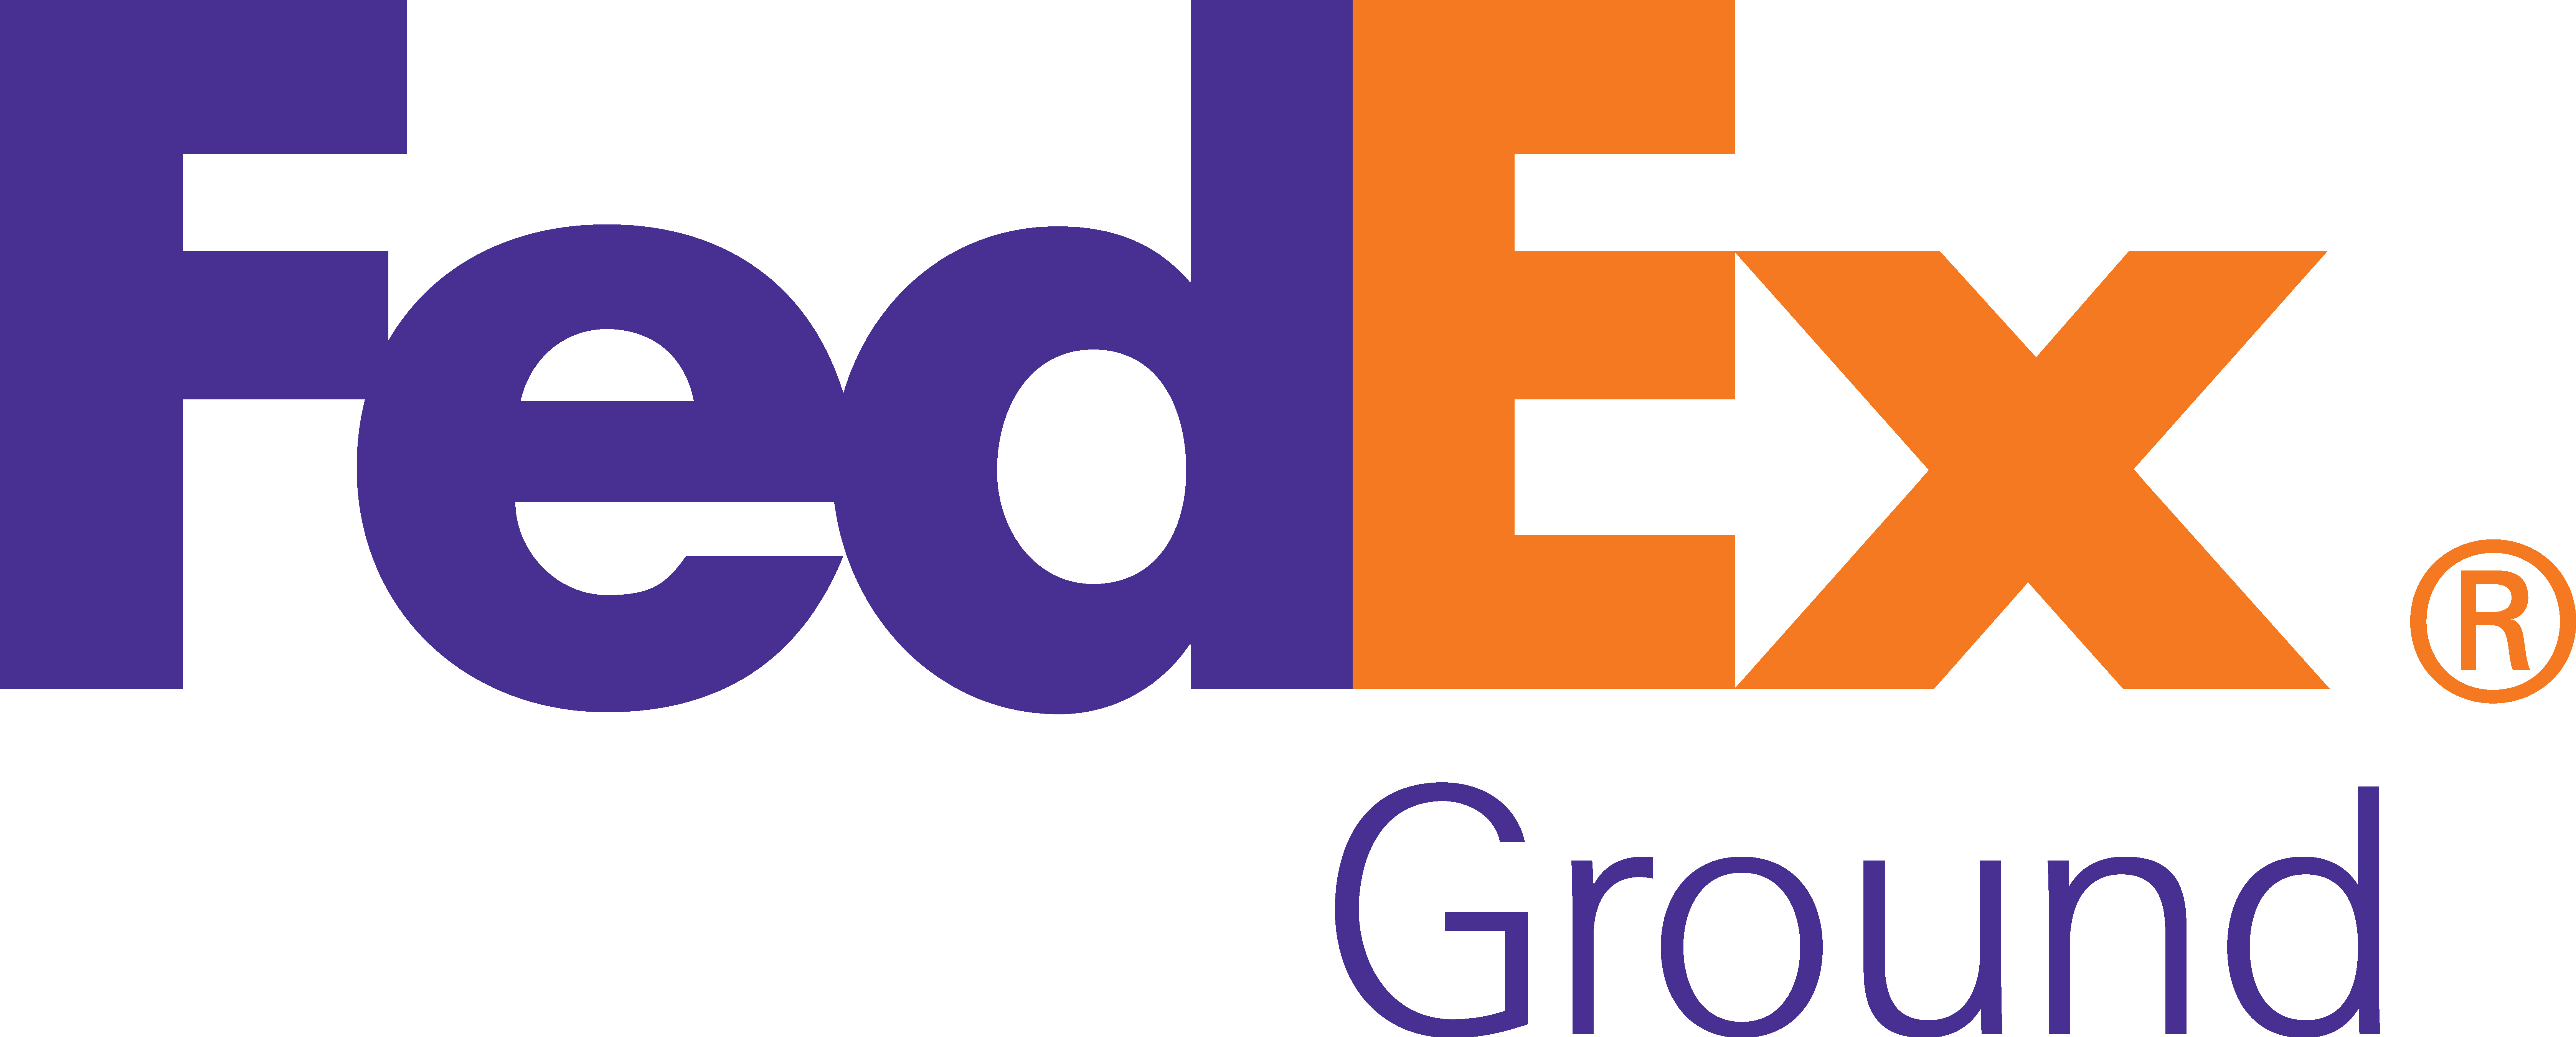 1. Fedex (Chapter)